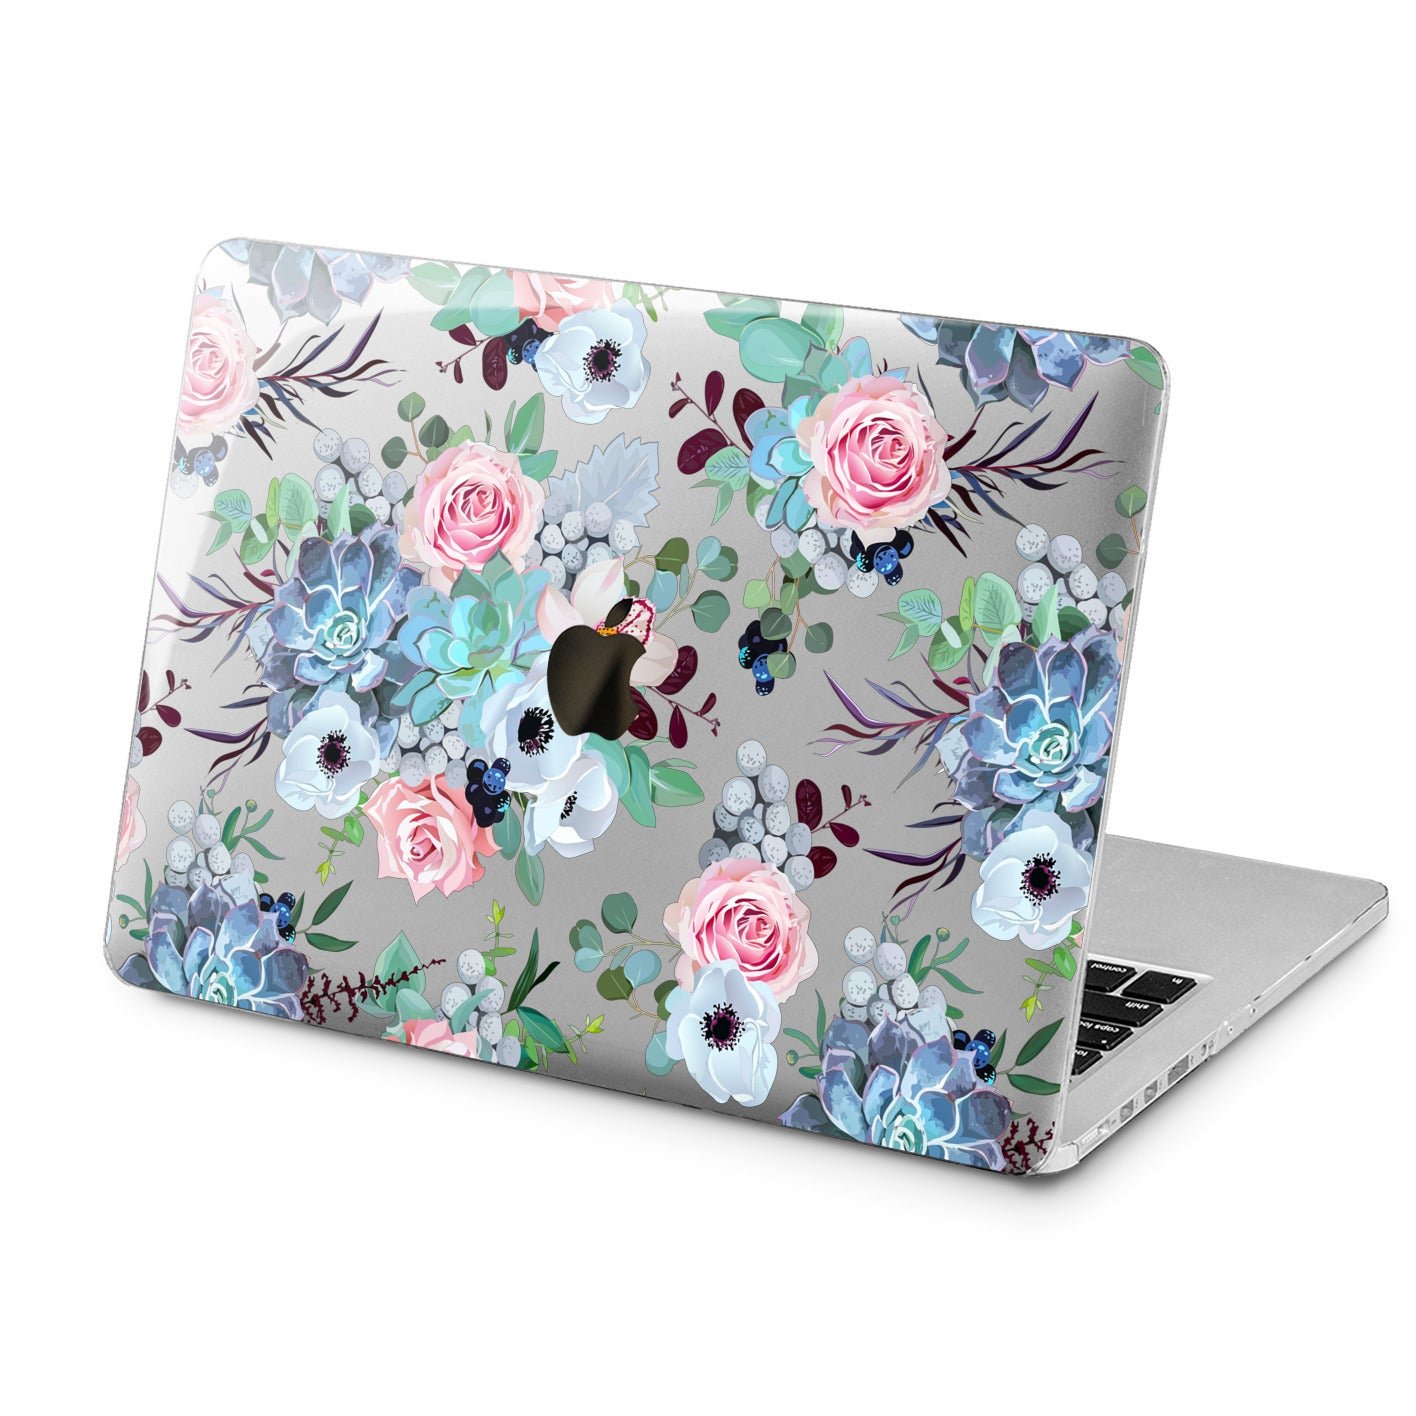 Lex Altern Lex Altern Succulent Blossom Case for your Laptop Apple Macbook.